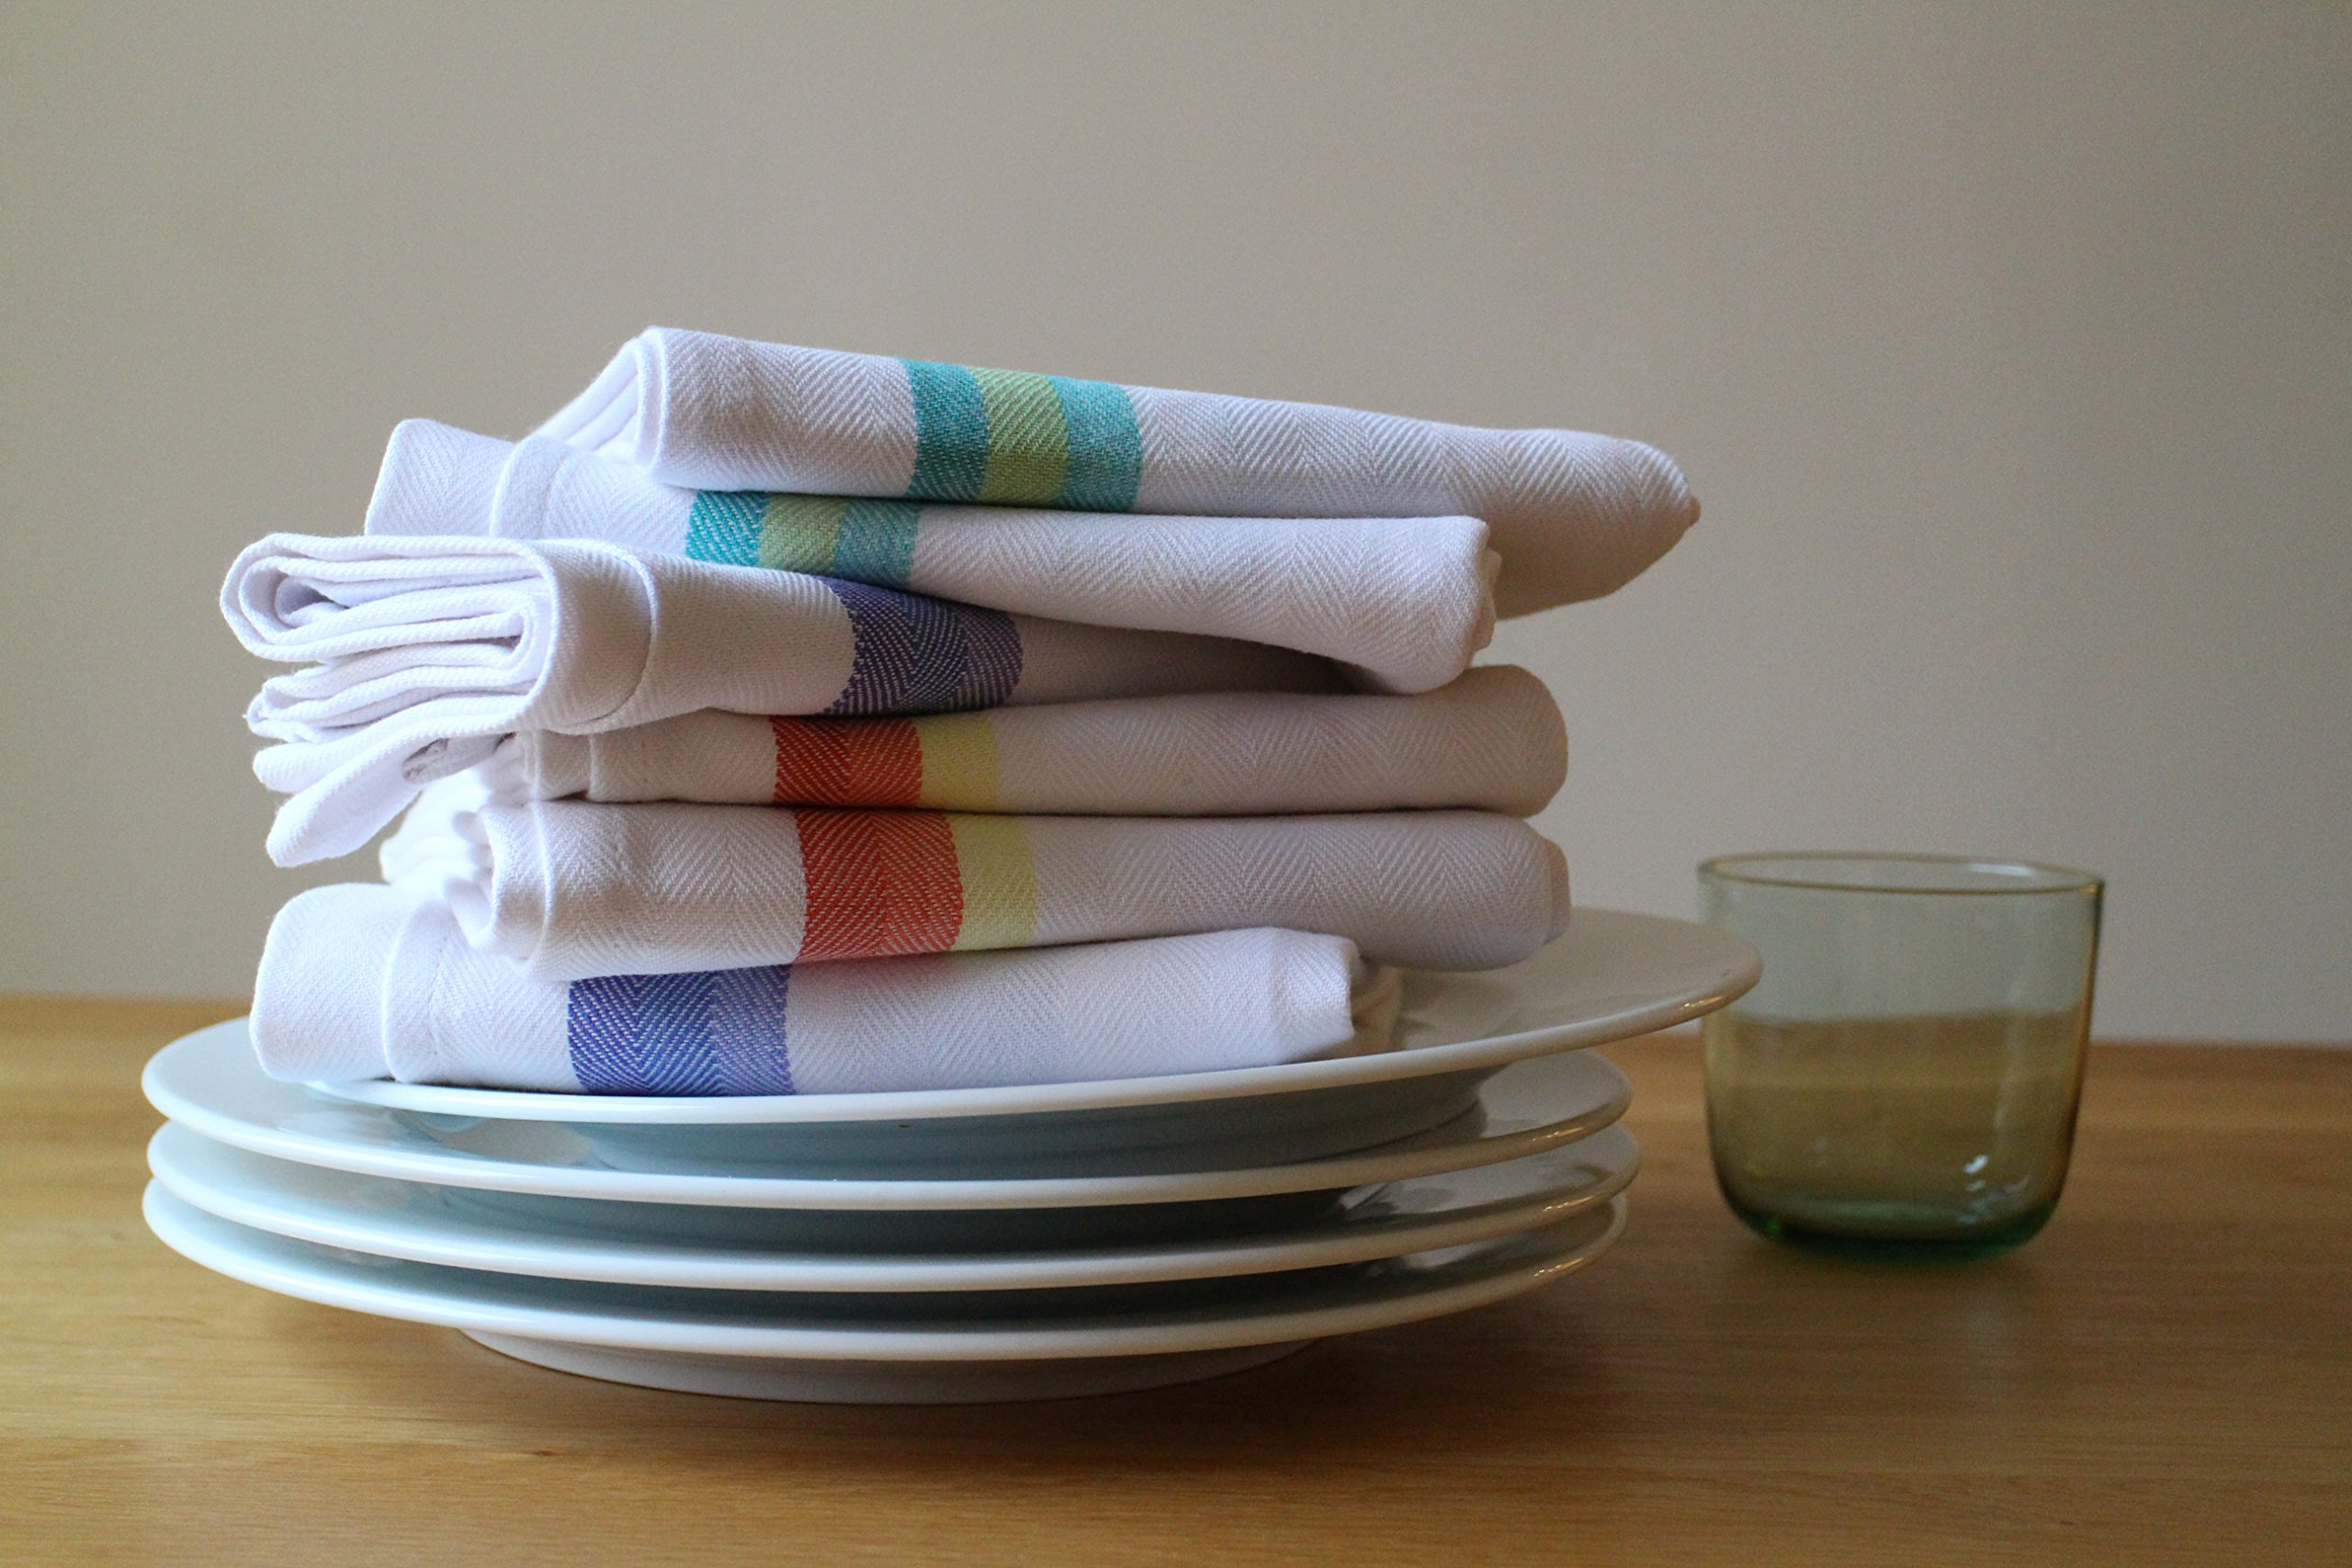 Kitchen Dish Towels set of 12-Tea Towels by Harringdons, 100% cotton. LARGE Dish Cloths 28''x20'' soft and absorbent. White with blue, green and red stripes, 4 of each. There's no substitute for QUALITY by Harringdons (Image #5)